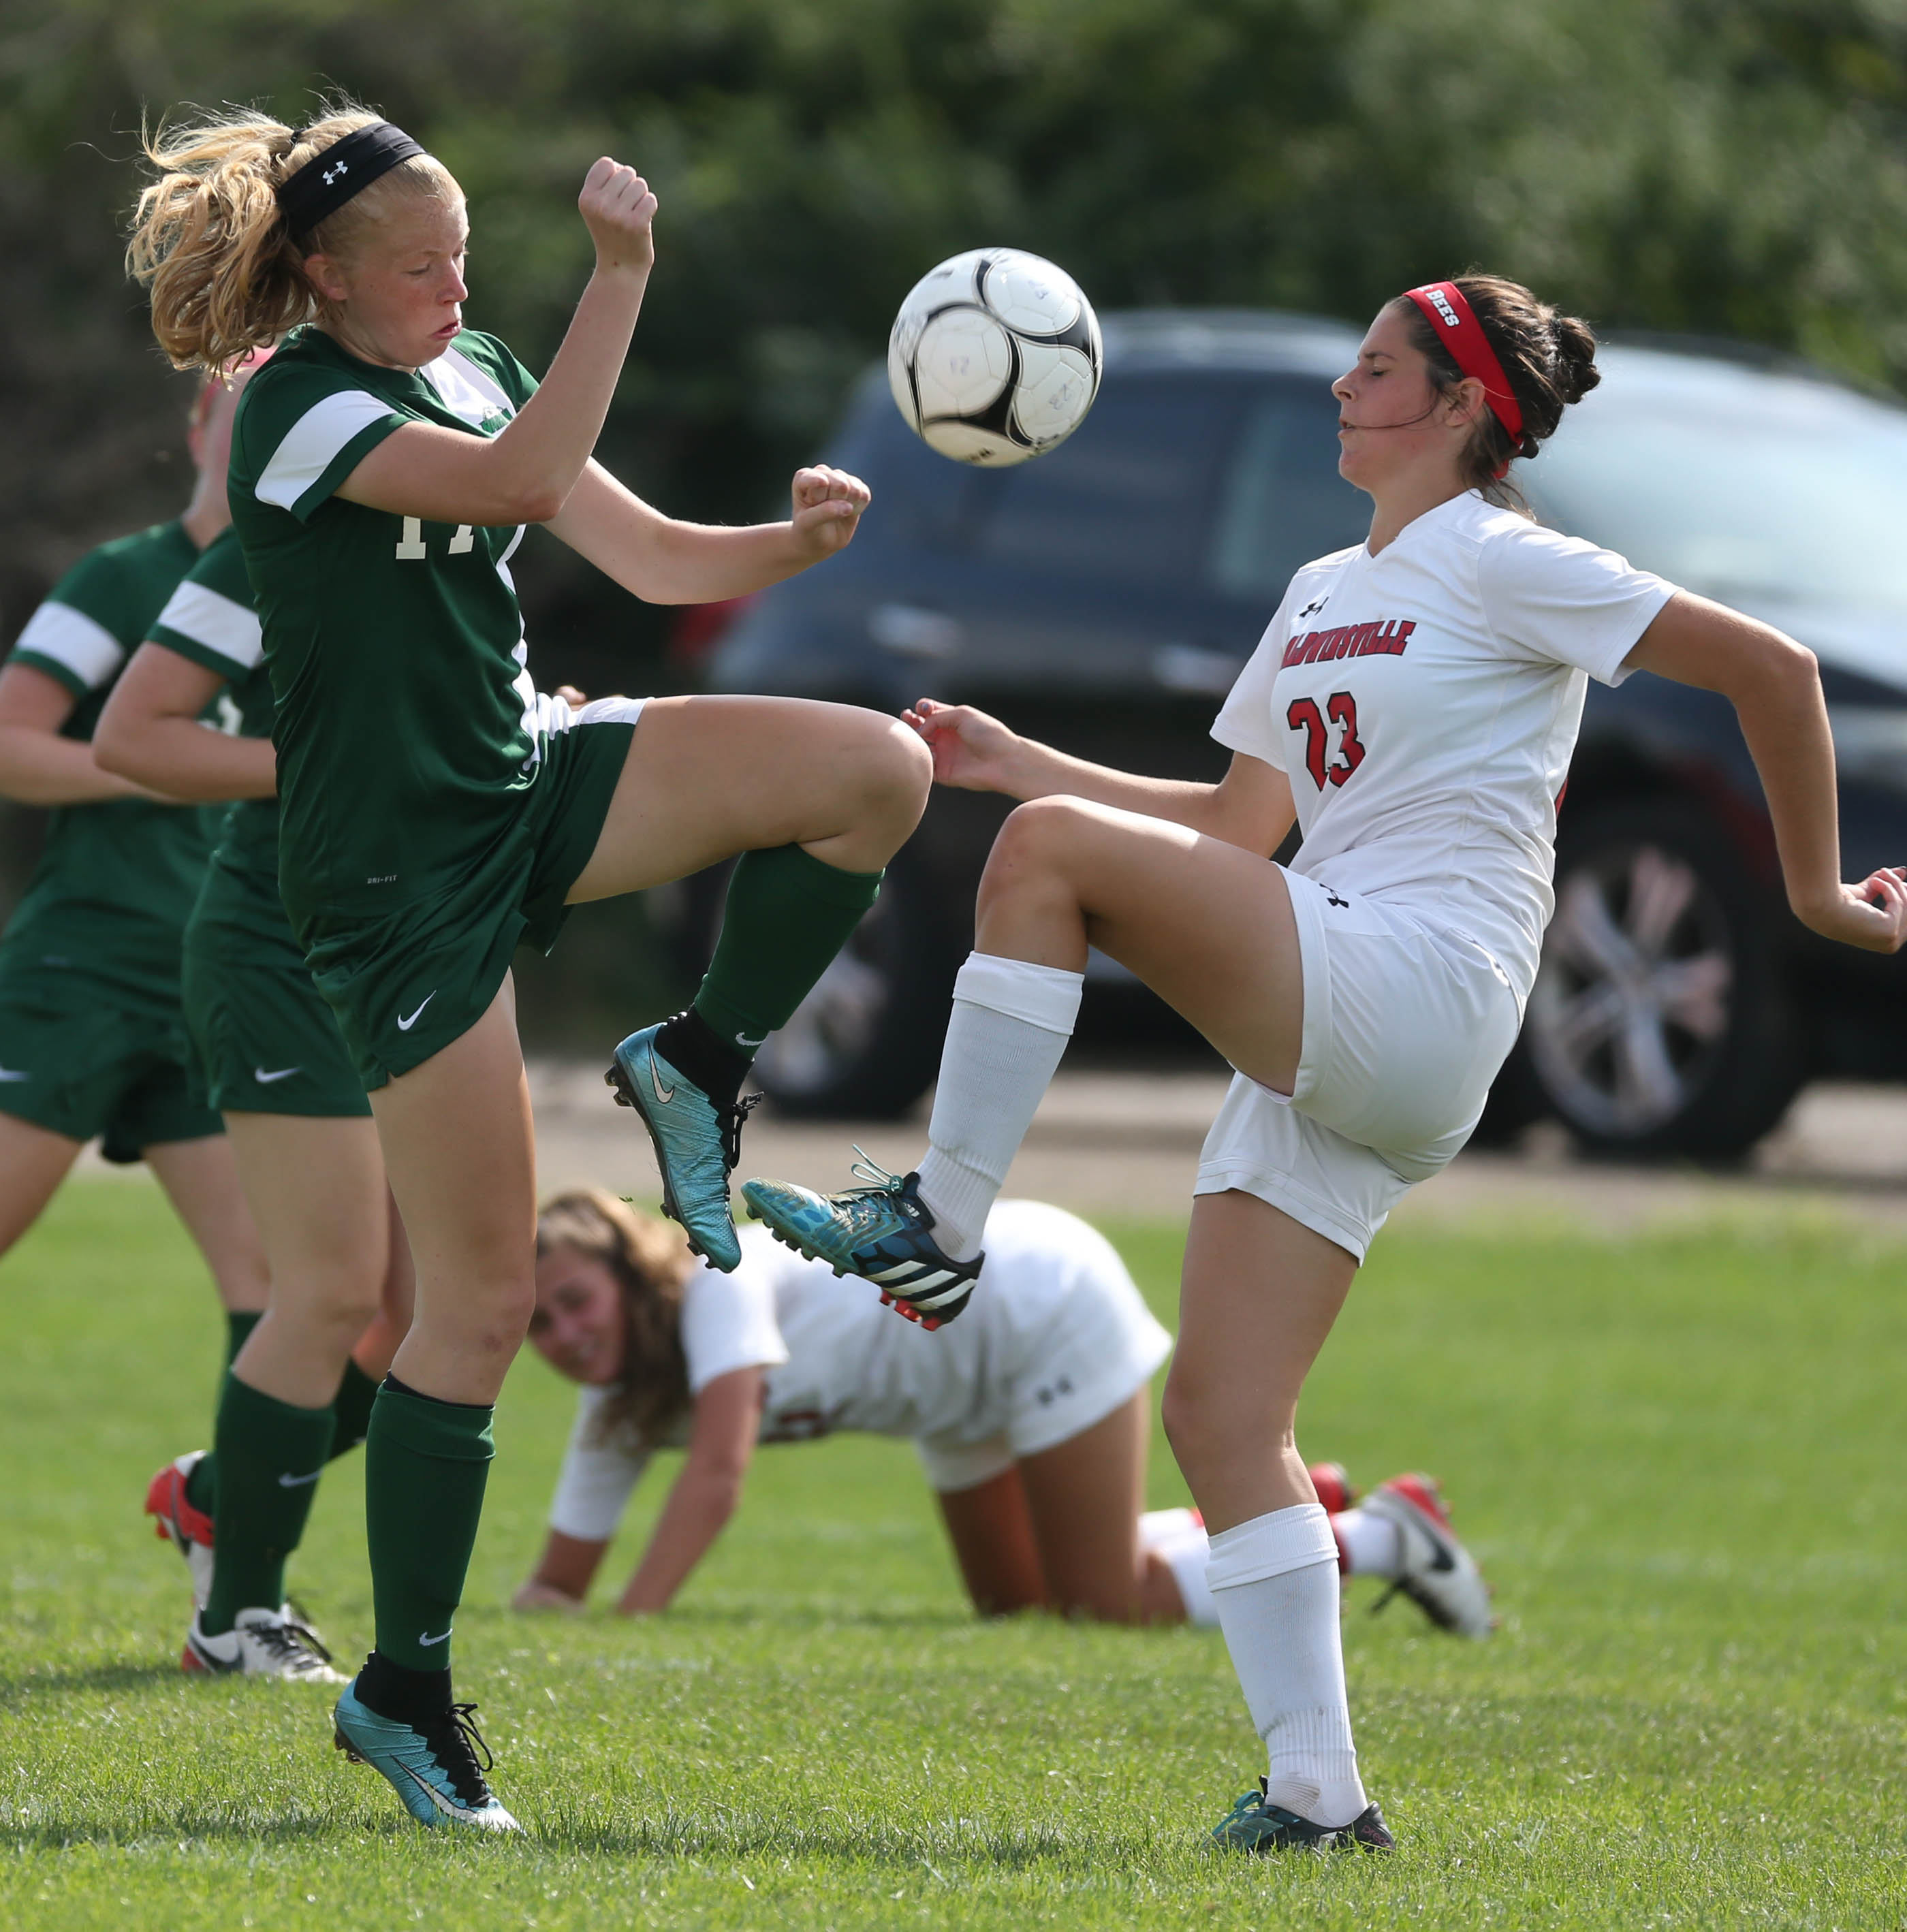 Nardin's Allison Busha battles Baldwinsville's Simone Neivel for the ball in the second half of a game at the  Clarence Tournament.  (James P. McCoy/ Buffalo News)